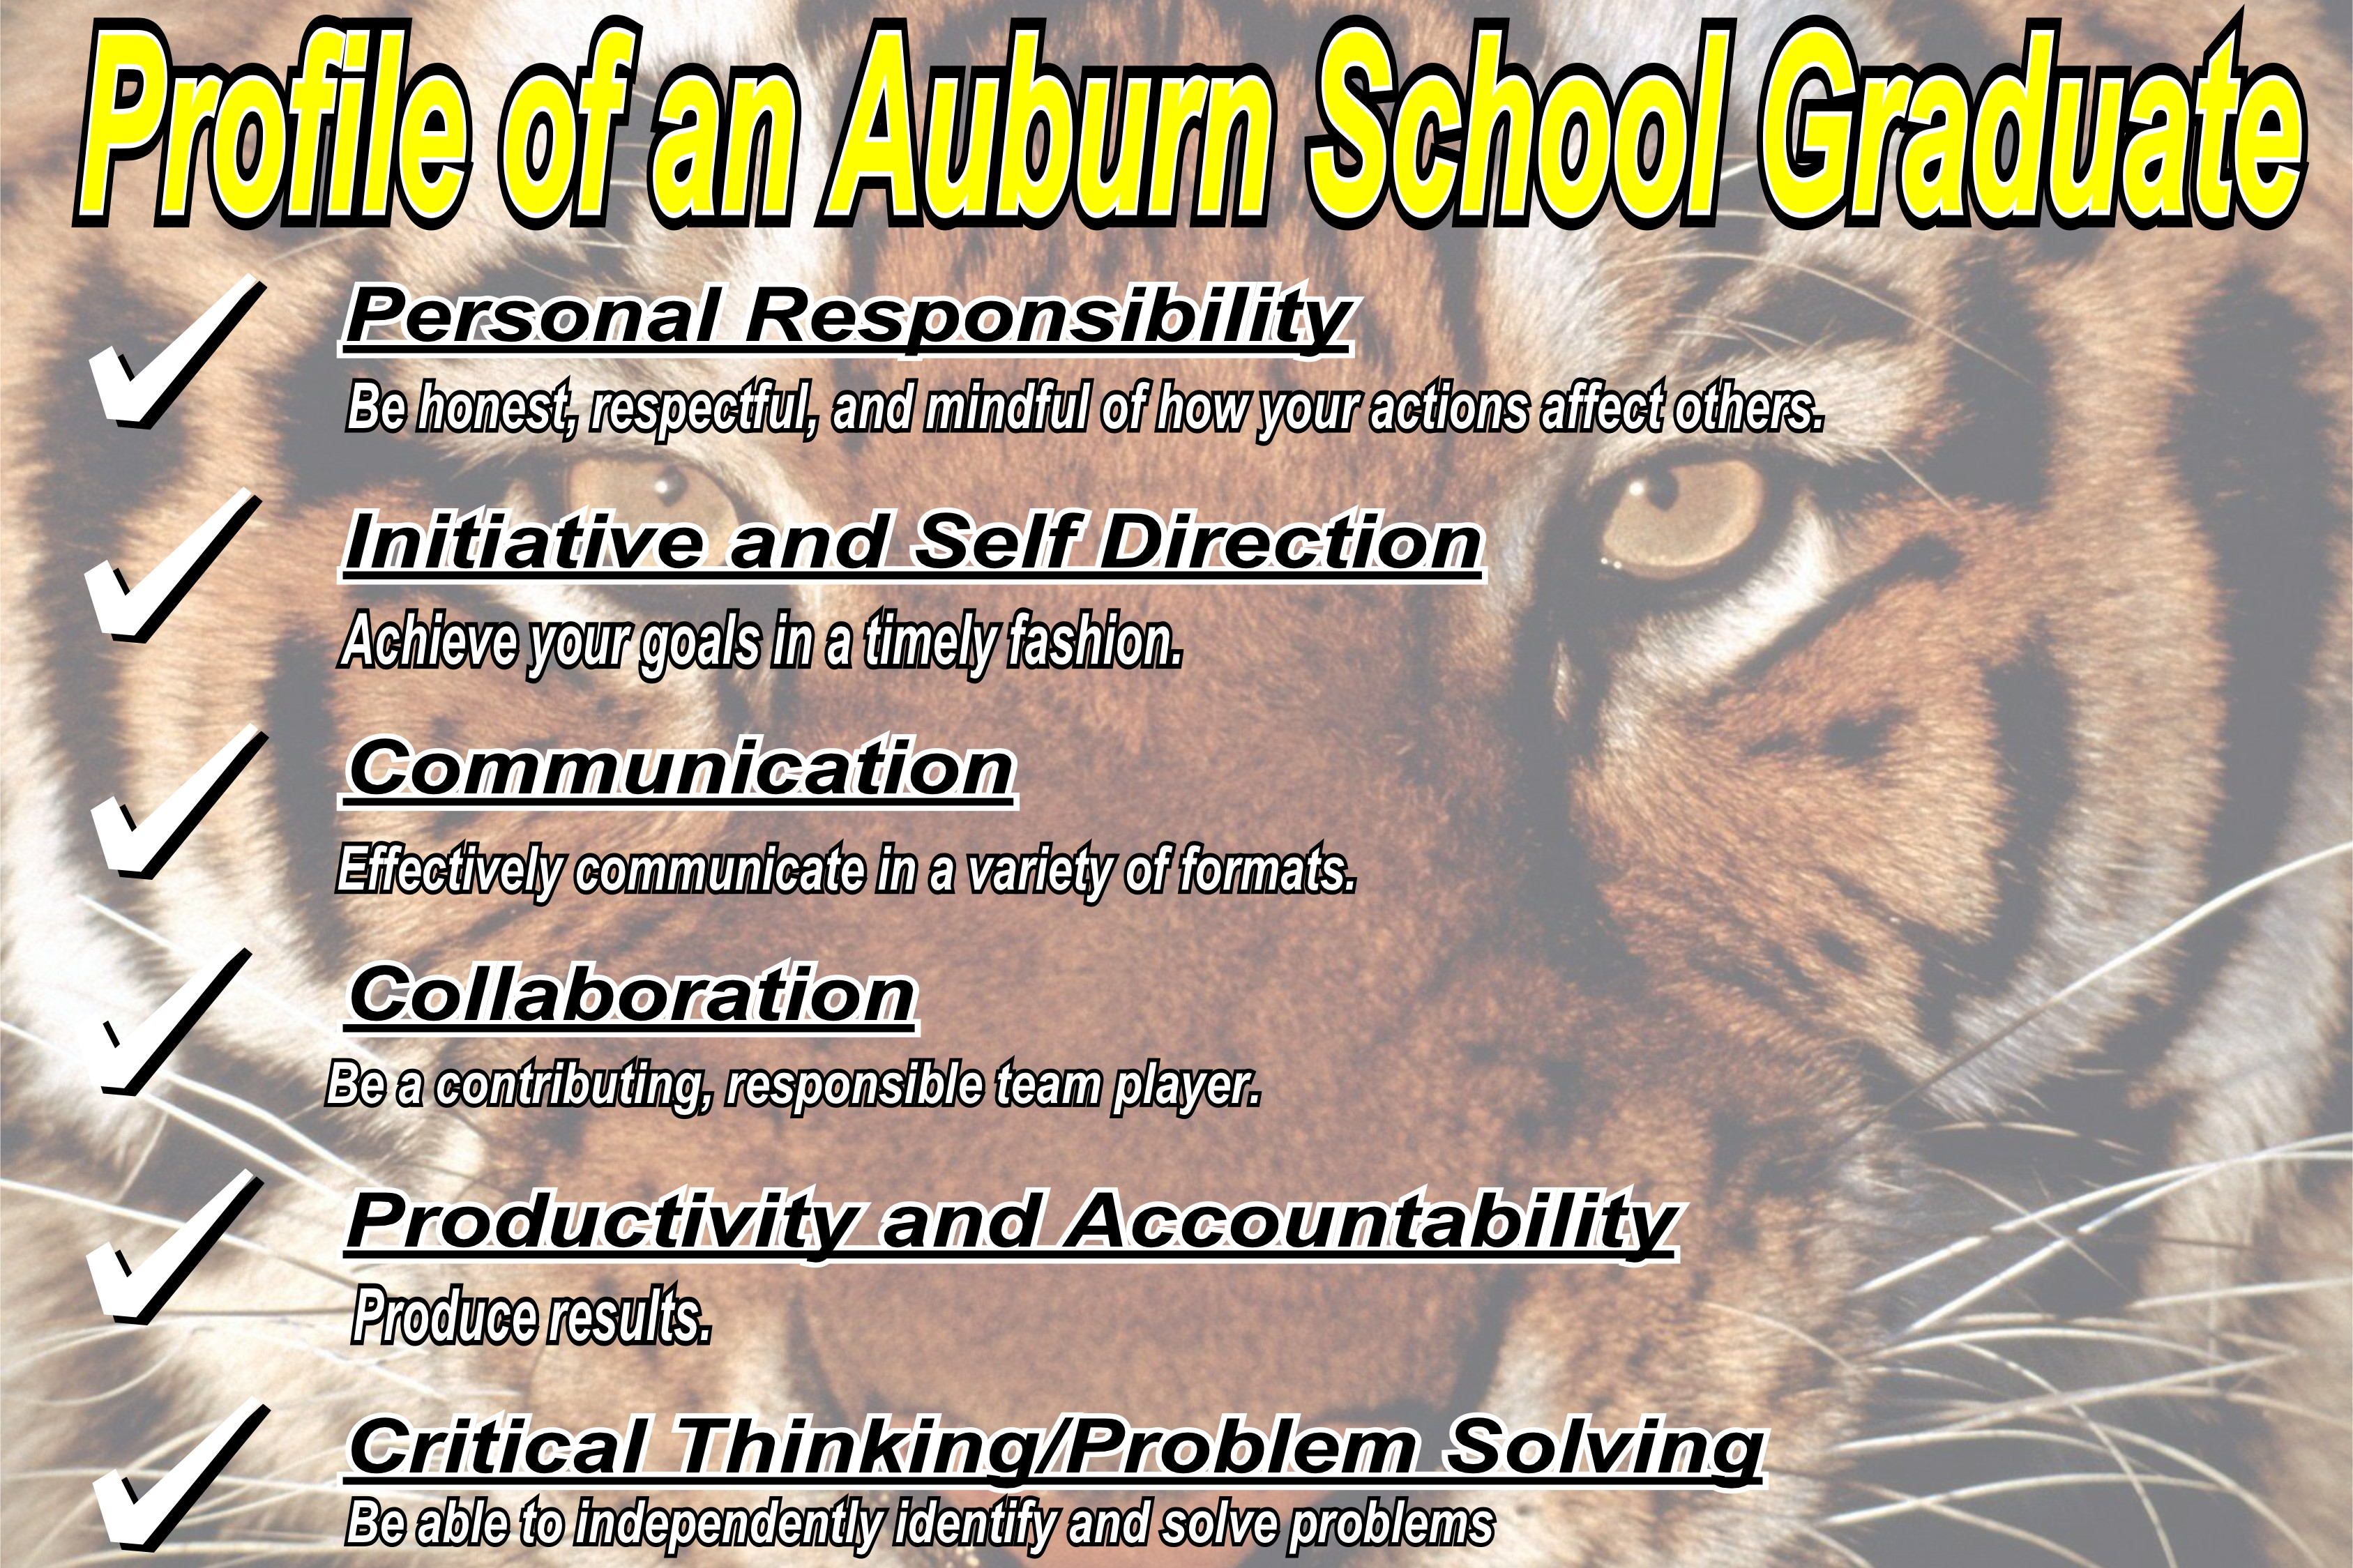 Profile of an Auburn Graduate